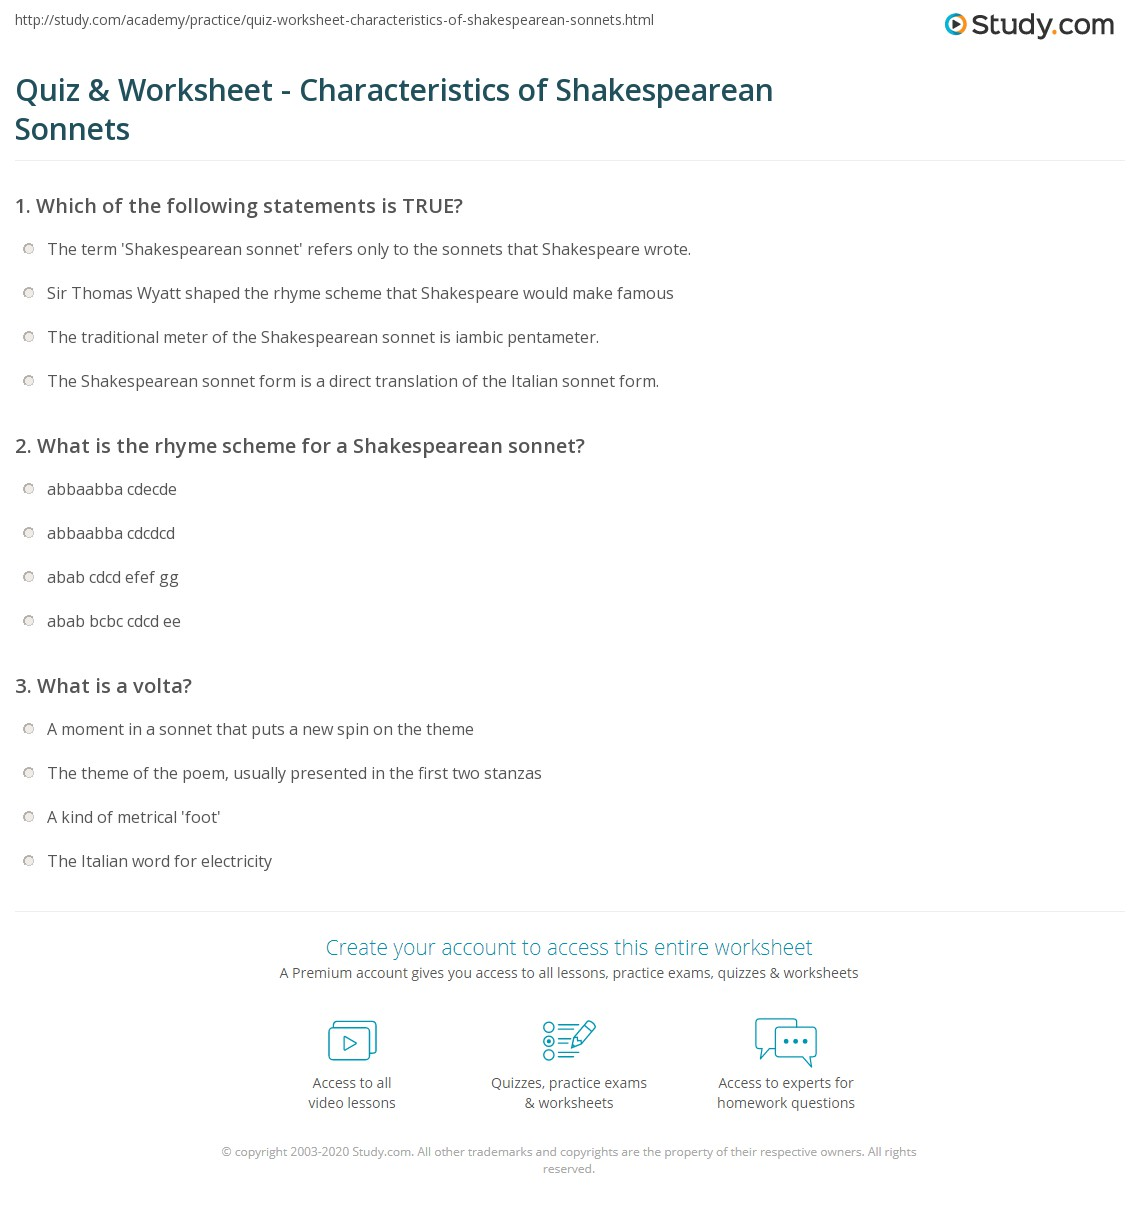 quiz worksheet characteristics of shakespearean sonnets. Black Bedroom Furniture Sets. Home Design Ideas